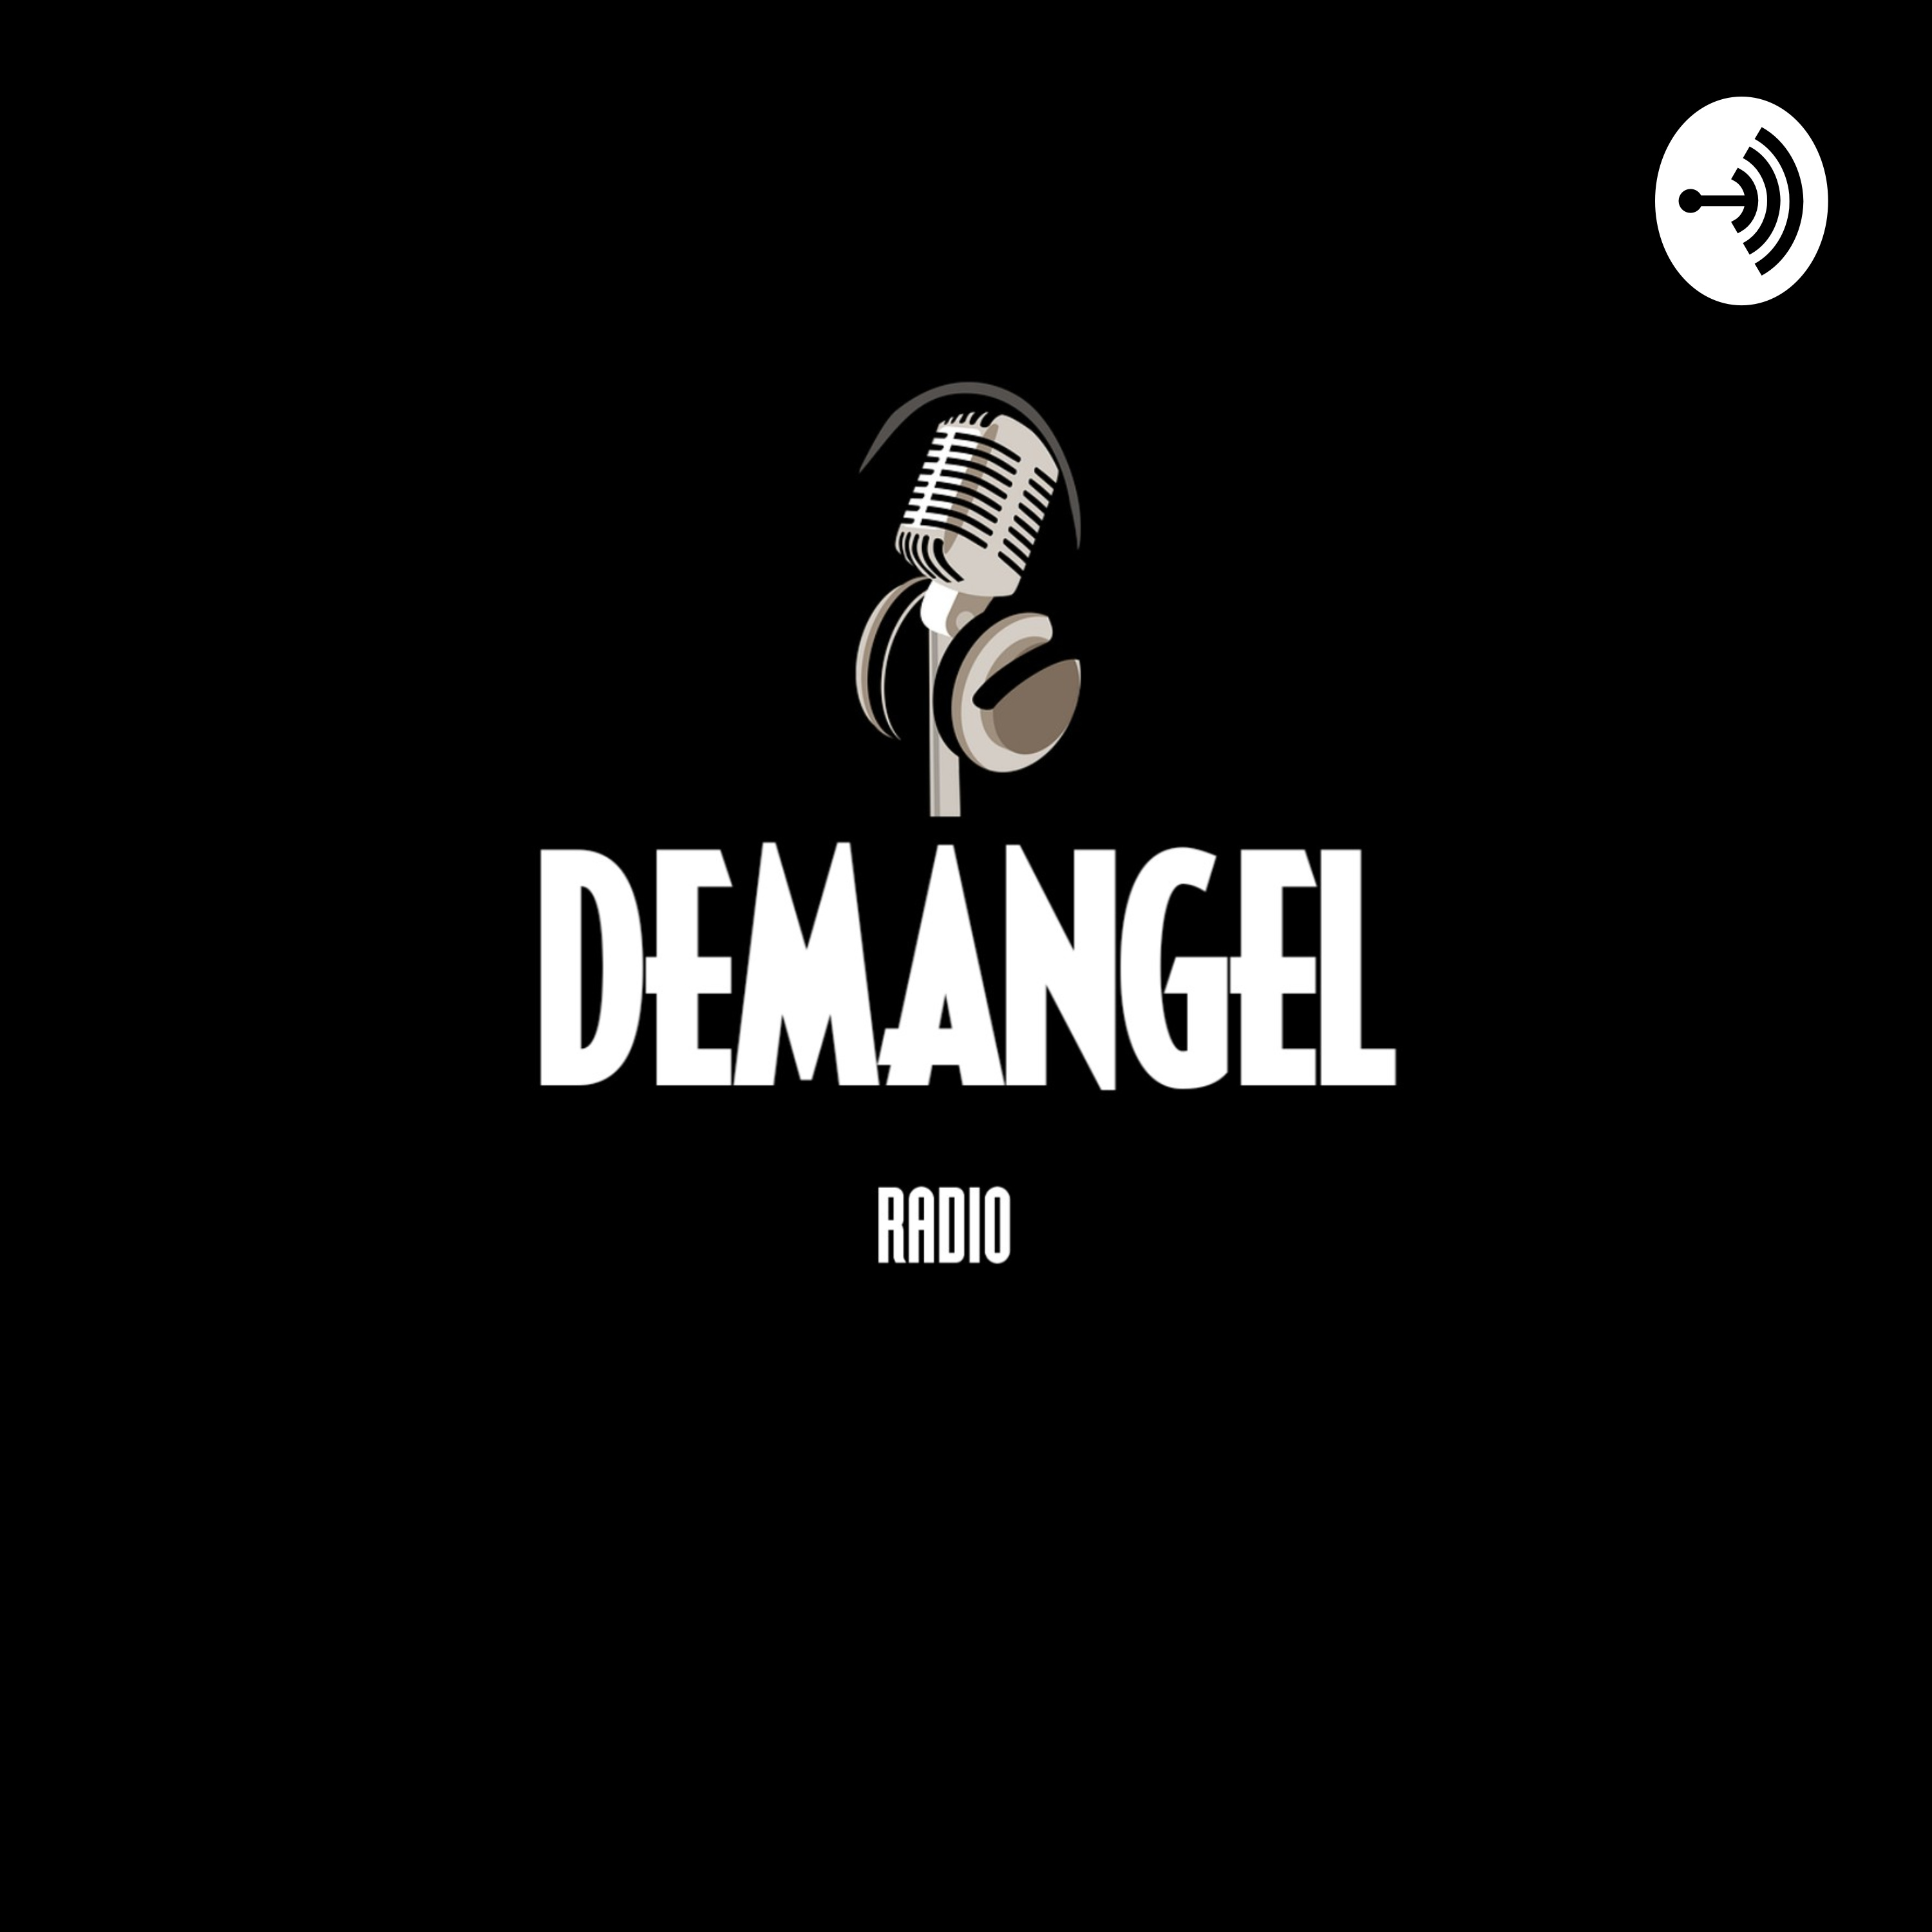 Demangel Radio | Listen via Stitcher for Podcasts